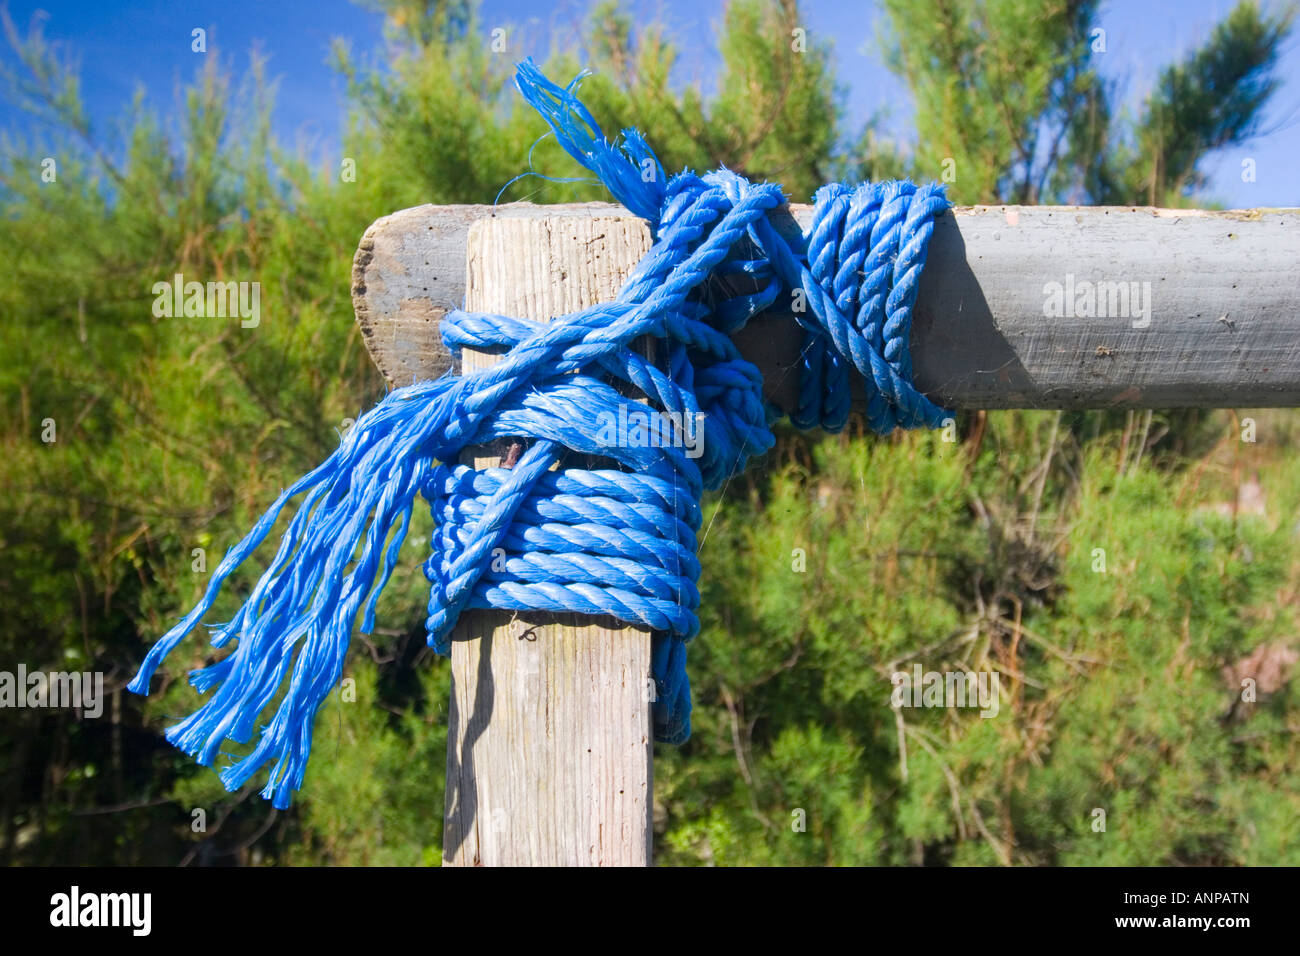 Two lengths of wood bound together at right angles with blue nylon rope - Stock Image